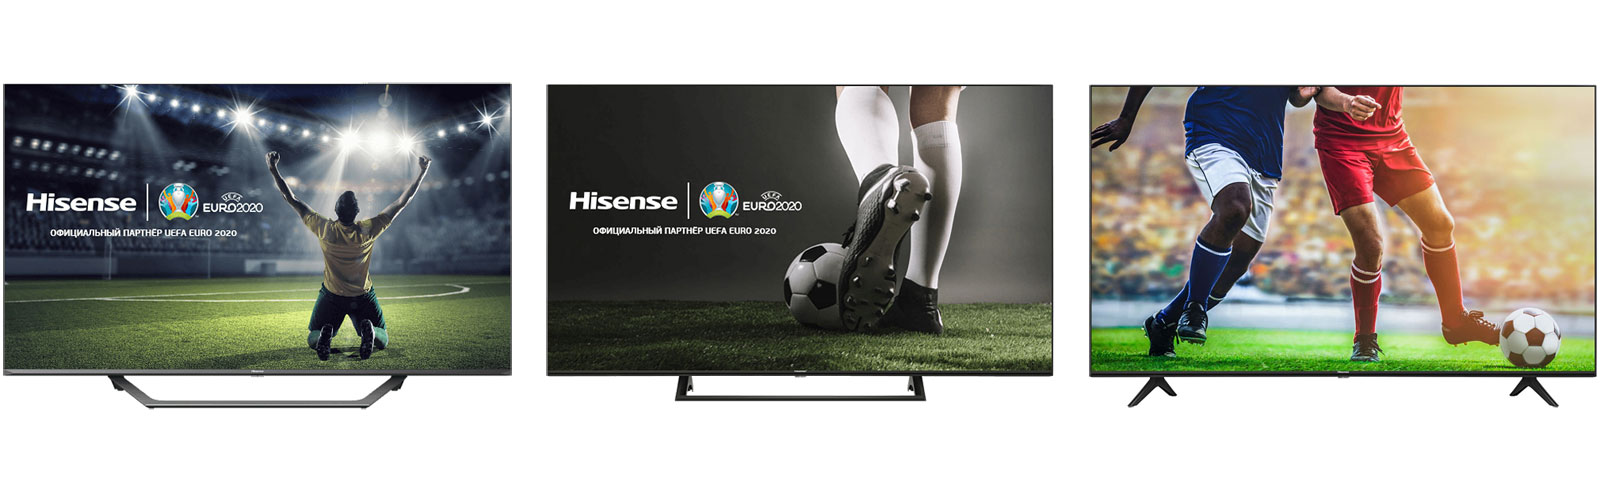 2020 Hisense A7500F, A7300F, A7100F 4K TV series - specifications and features